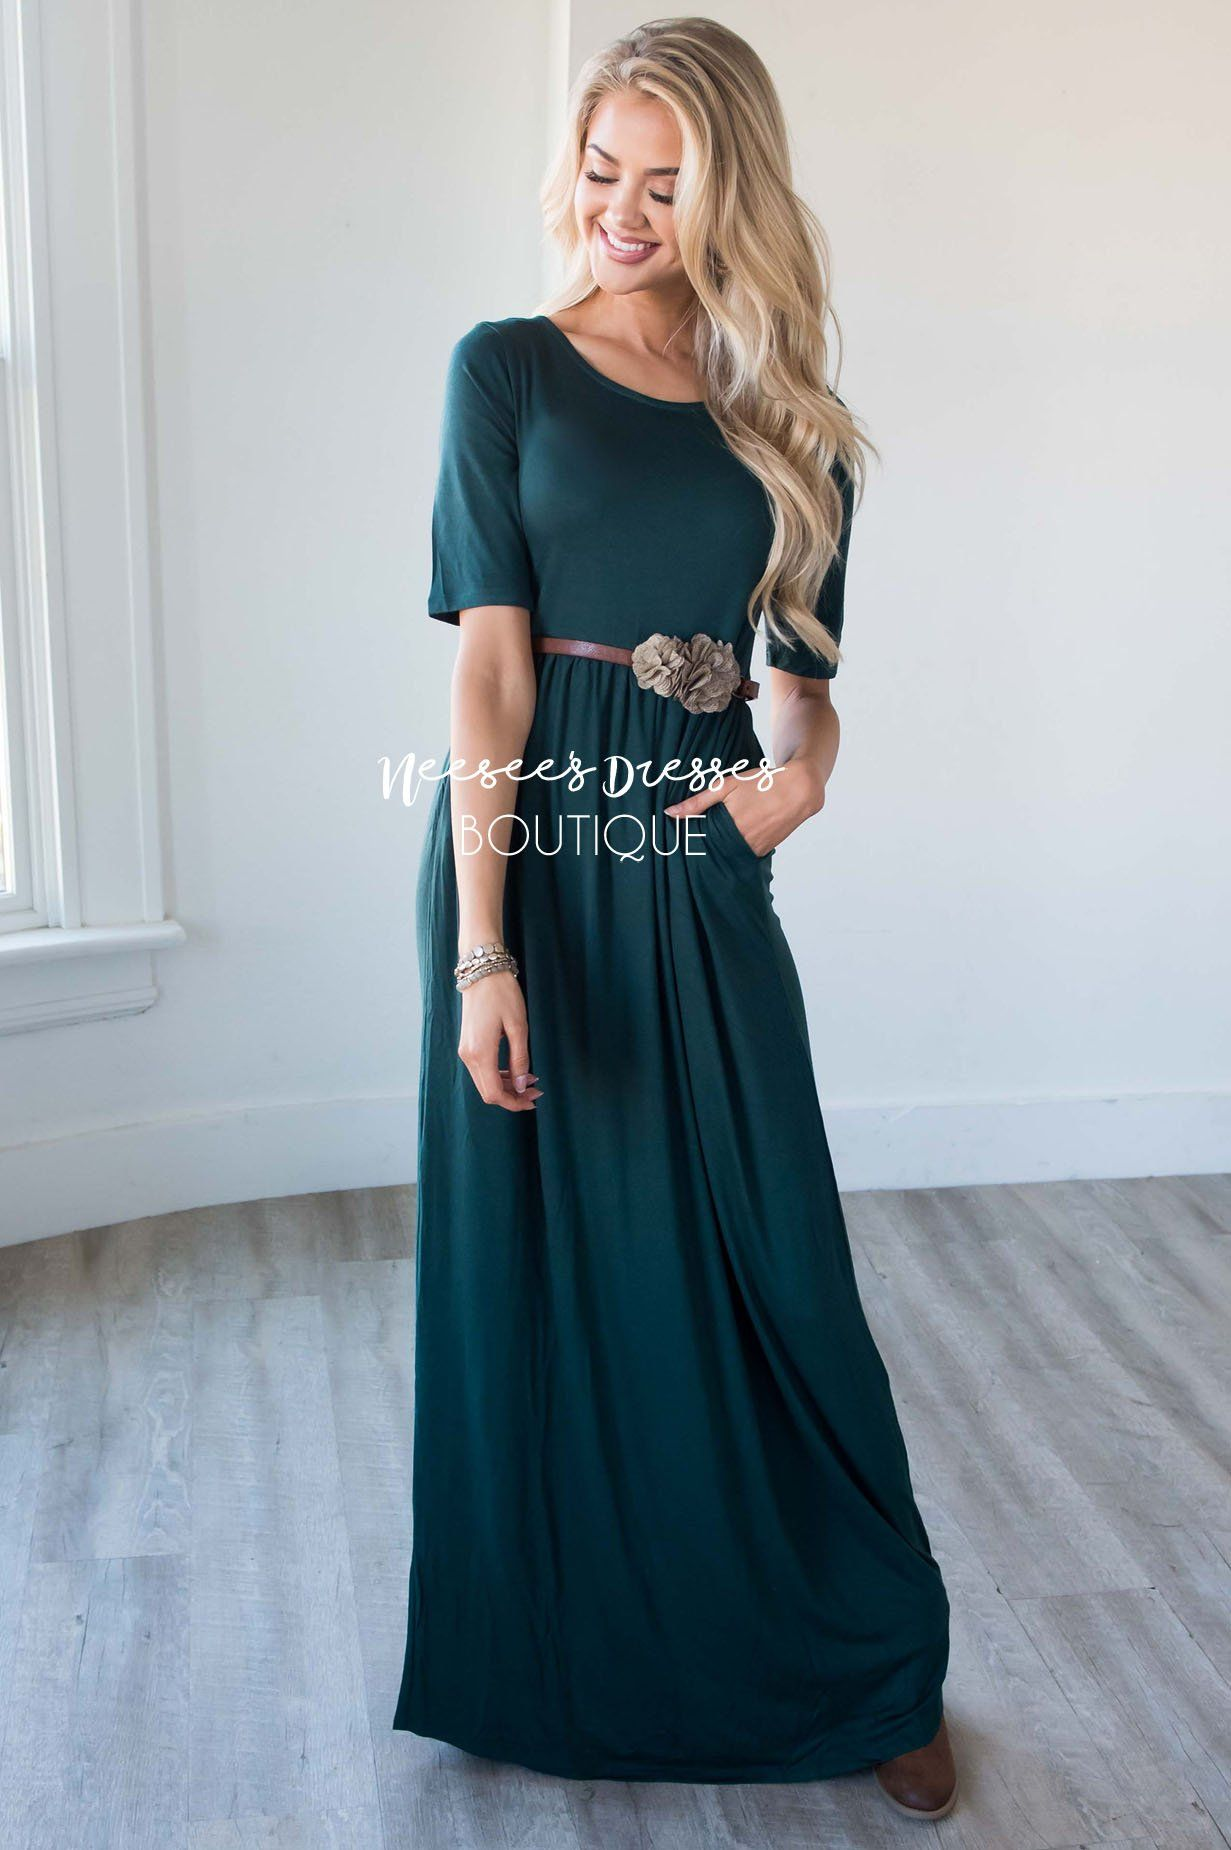 The Ritchie 3 4 Length Sleeve Maxi Dress Maxi Dress Maxi Dress With Sleeves Dresses [ 1850 x 1231 Pixel ]